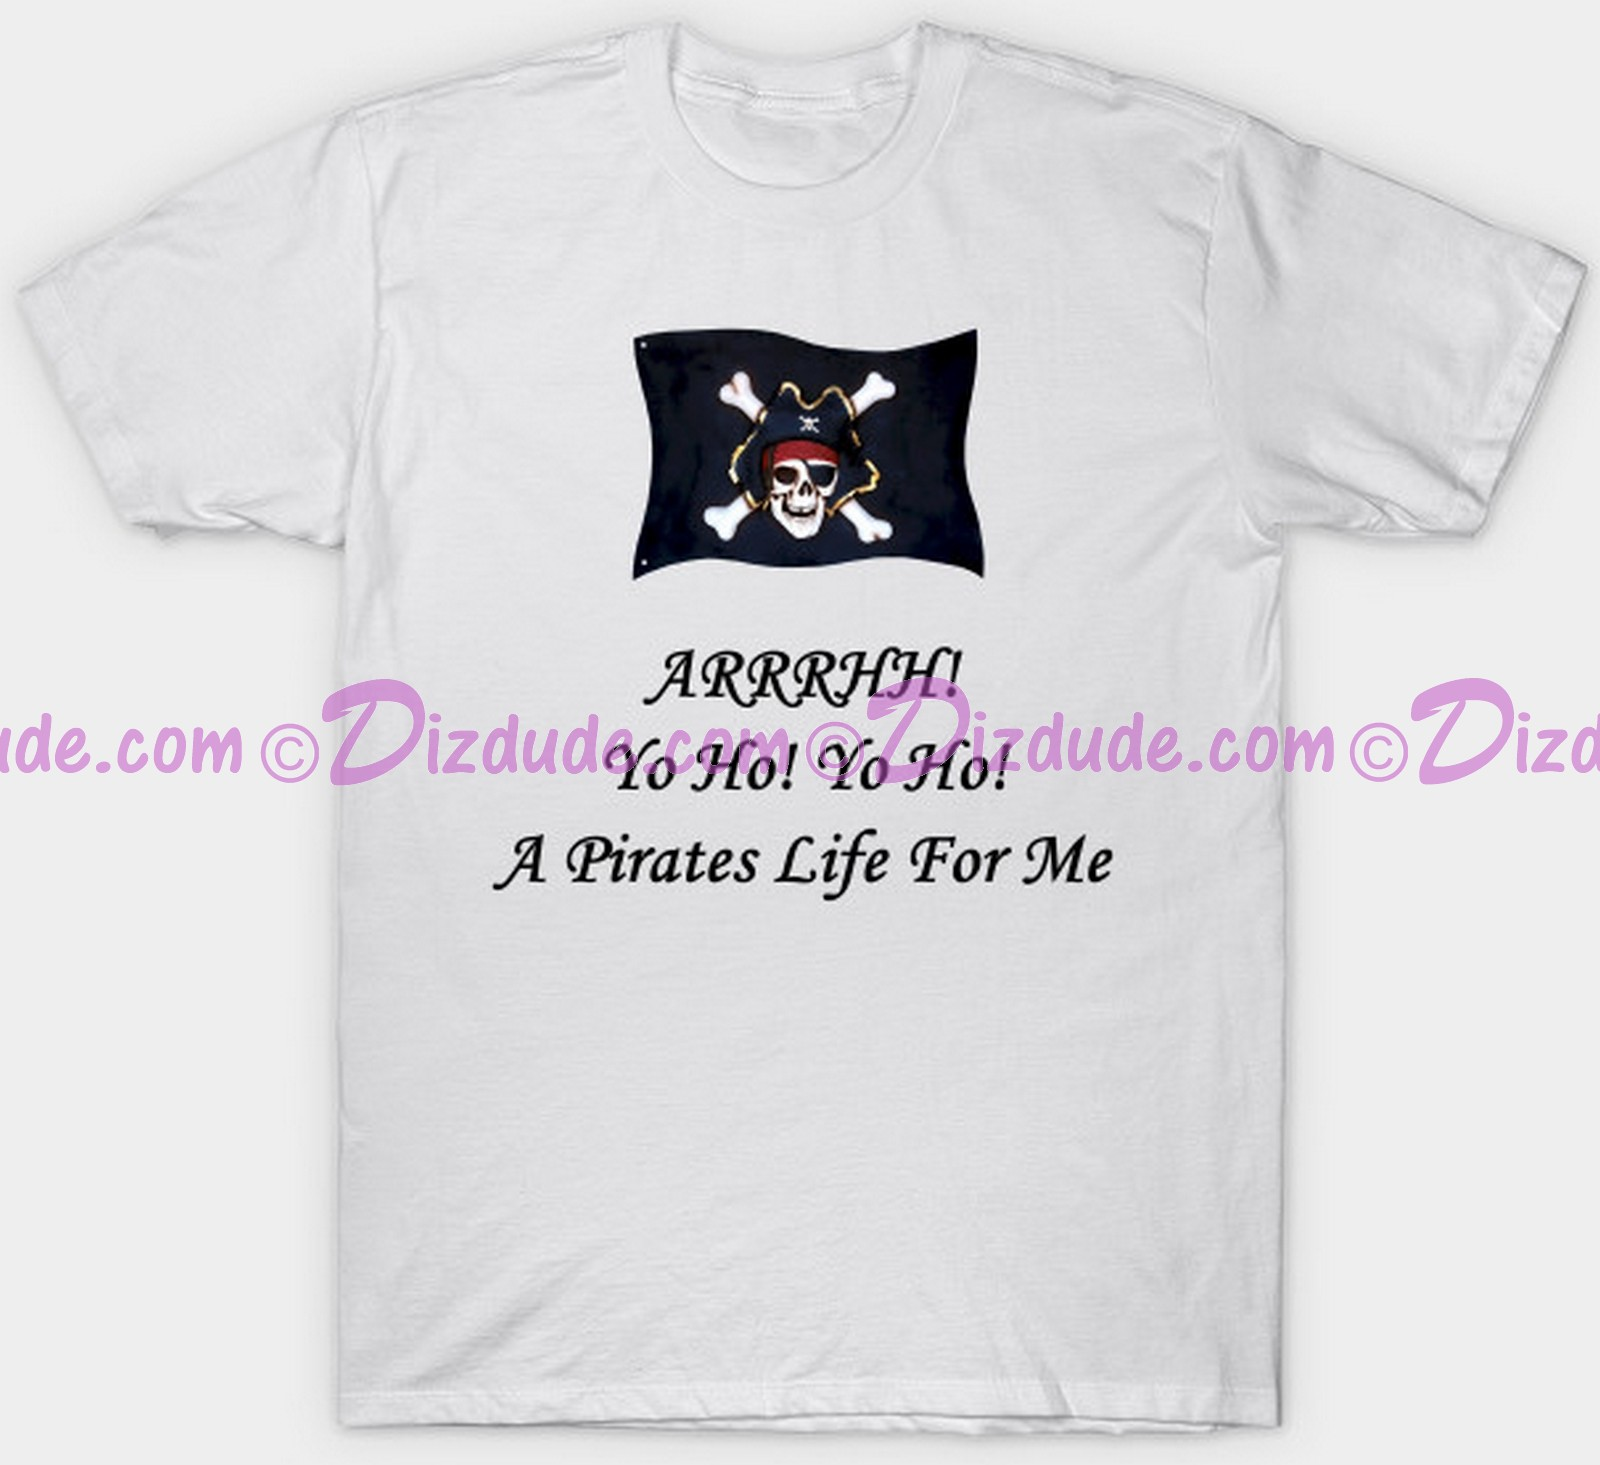 Yo Ho! Yo Ho! A Pirates Life For Me T-shirt (Tshirt, T shirt or Tee) © Dizdude.com